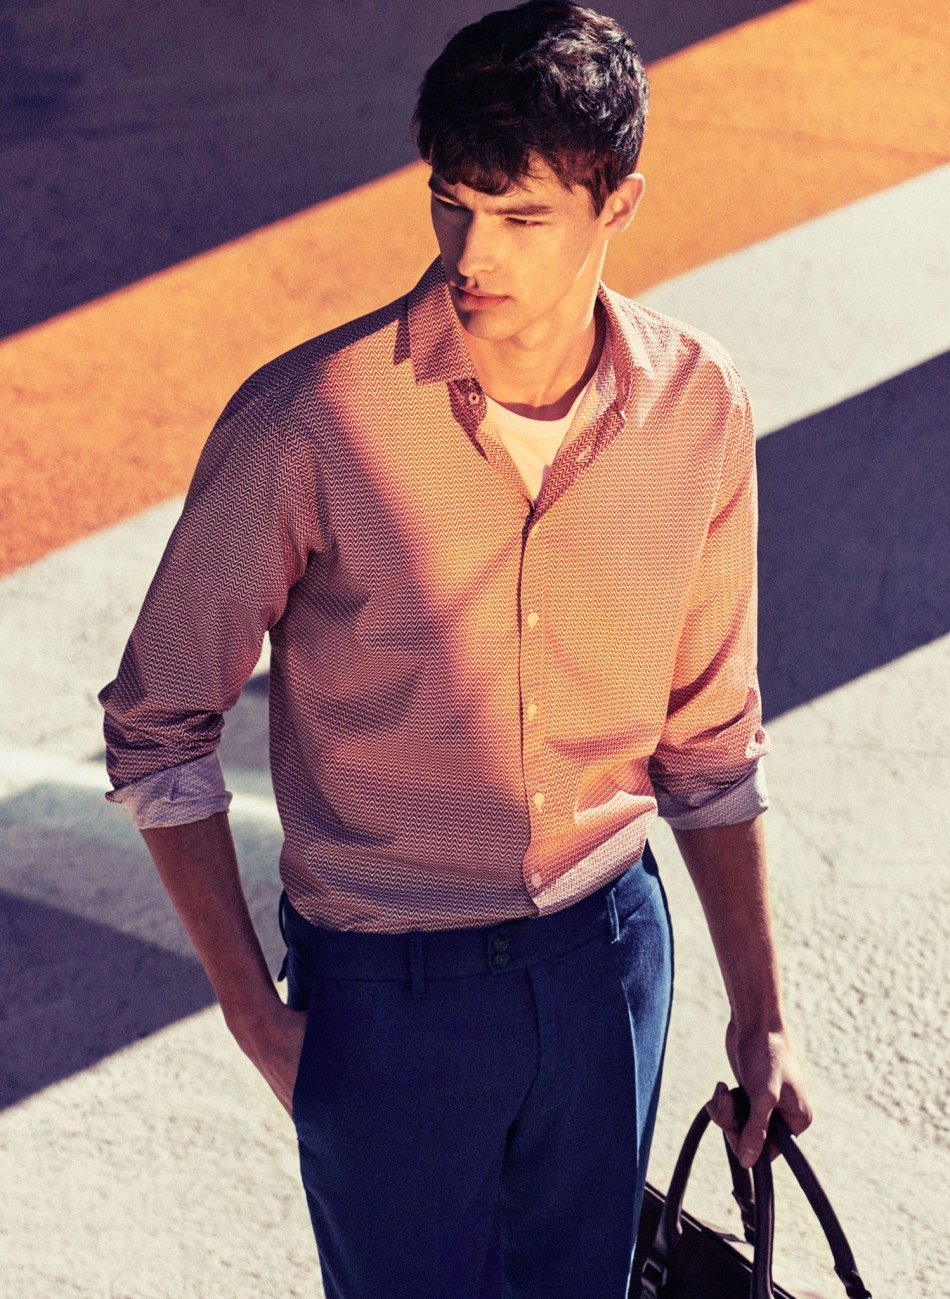 Mix elegance with colour. Discover our March lookbook: http://1.mng.us/ZF4nR #MANGOMan